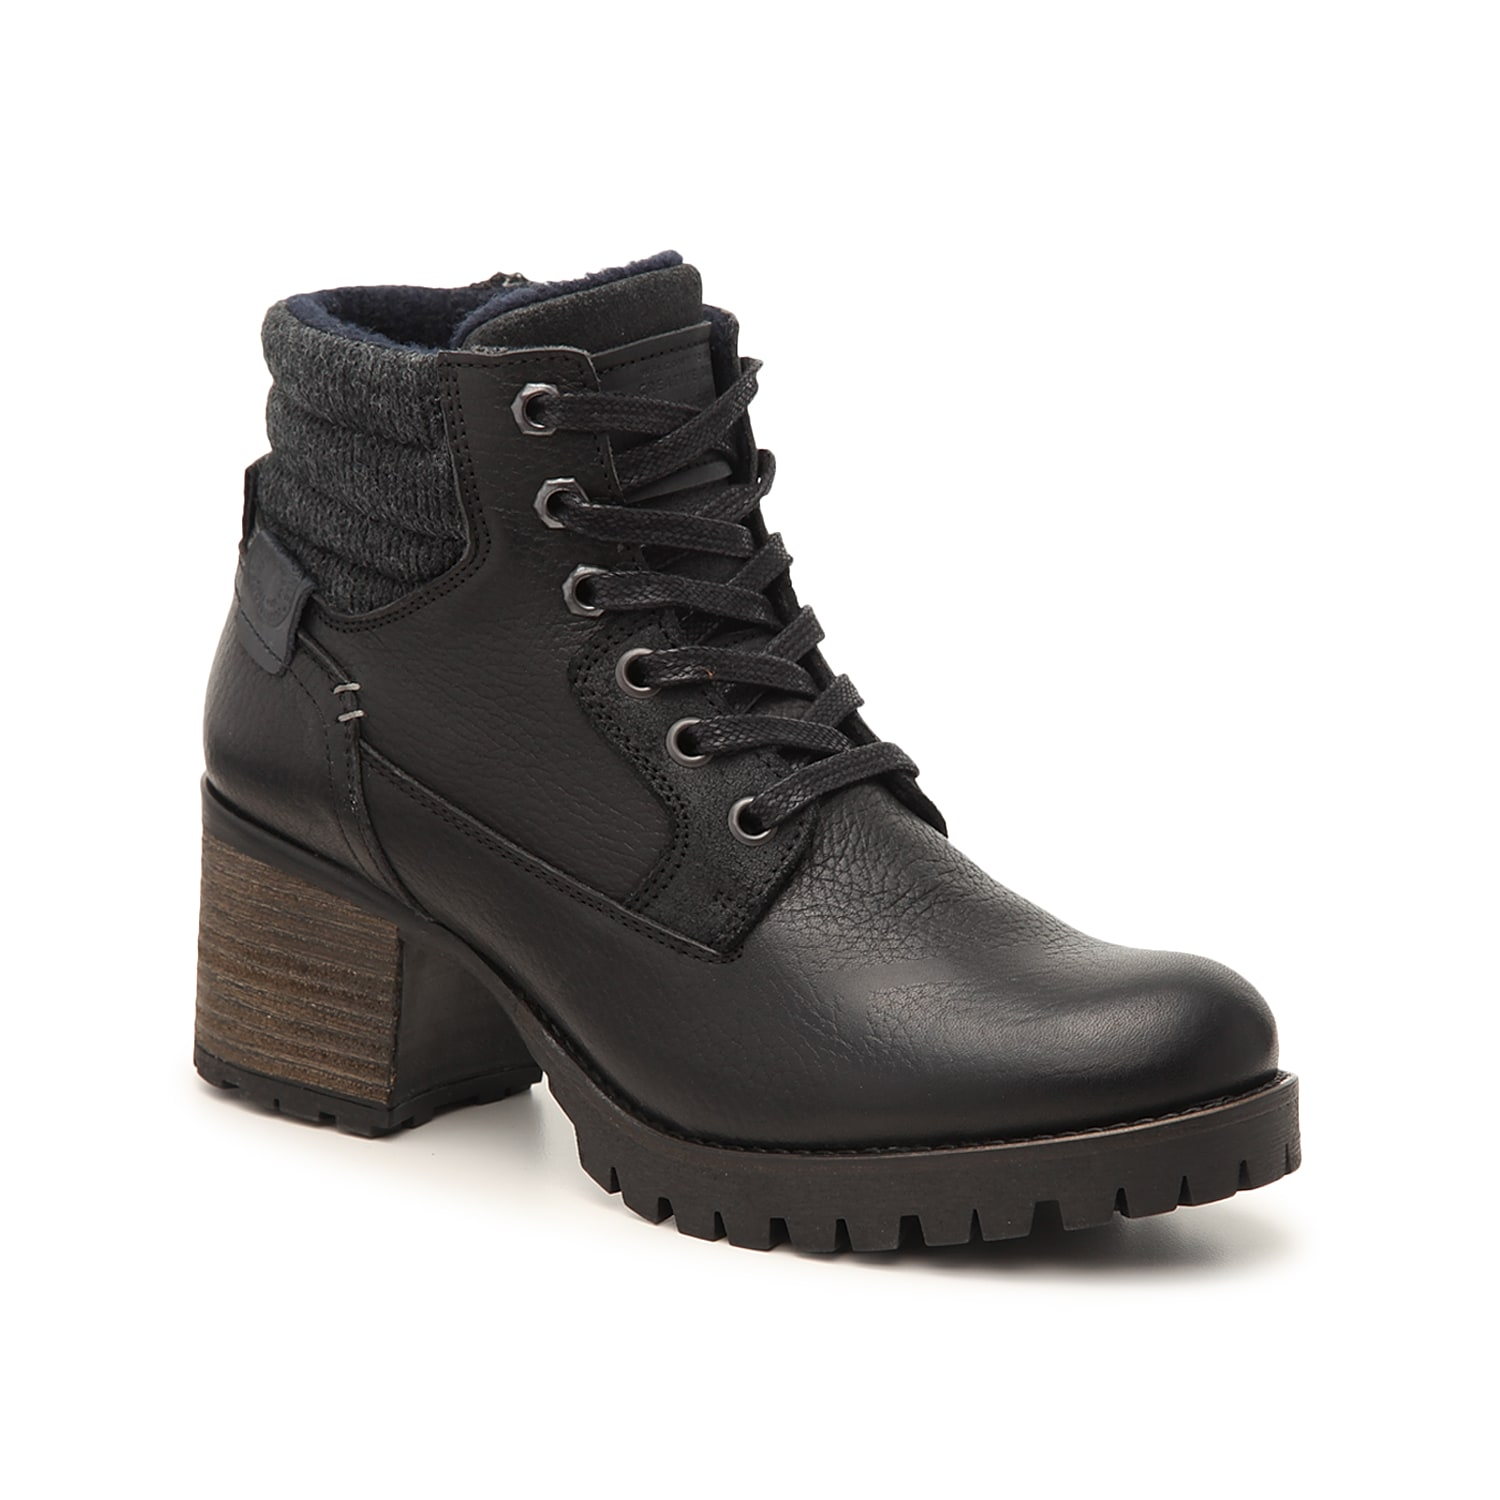 Edgy appeal comes easy with the Cassie bootie from Bullboxer. Featuring a sweater knit cuff and rugged lug sole, the leather ankle boot will pair perfectly with moto jackets or quilted sweatshirts.